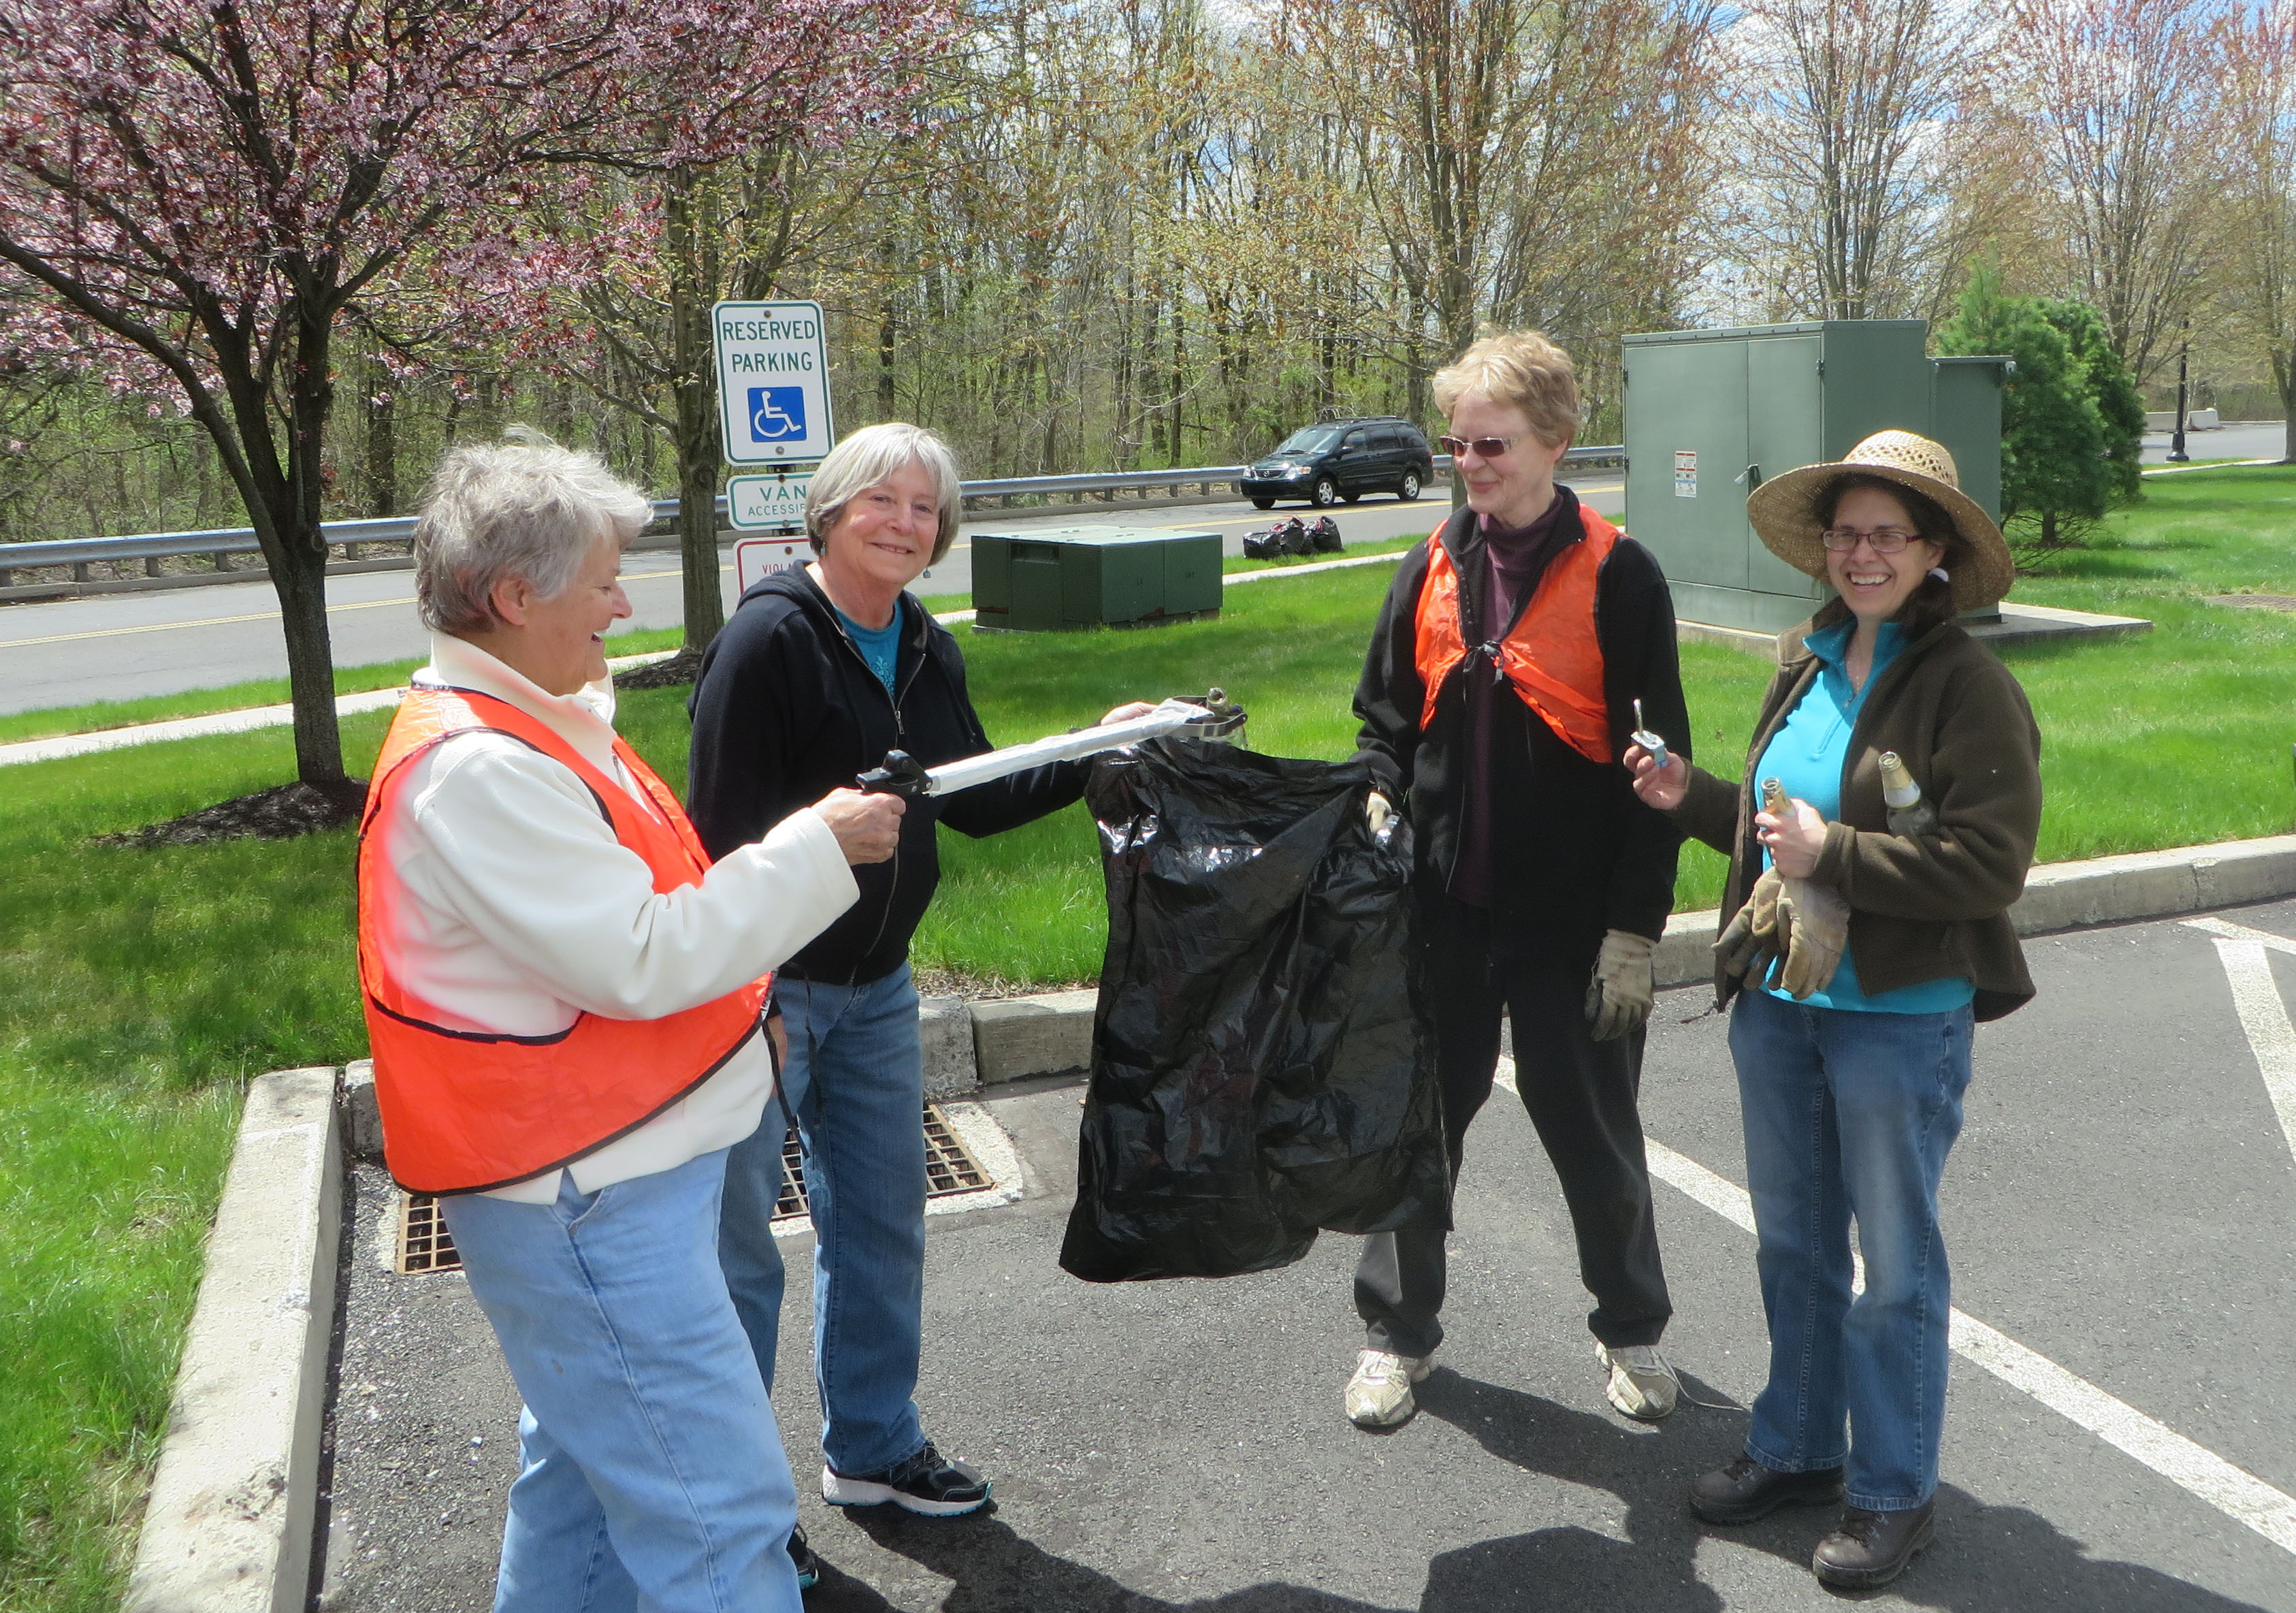 Ruth holds one of the quality grabbers loaned by Warrington Township for adopt-a-road trash pick-ups.